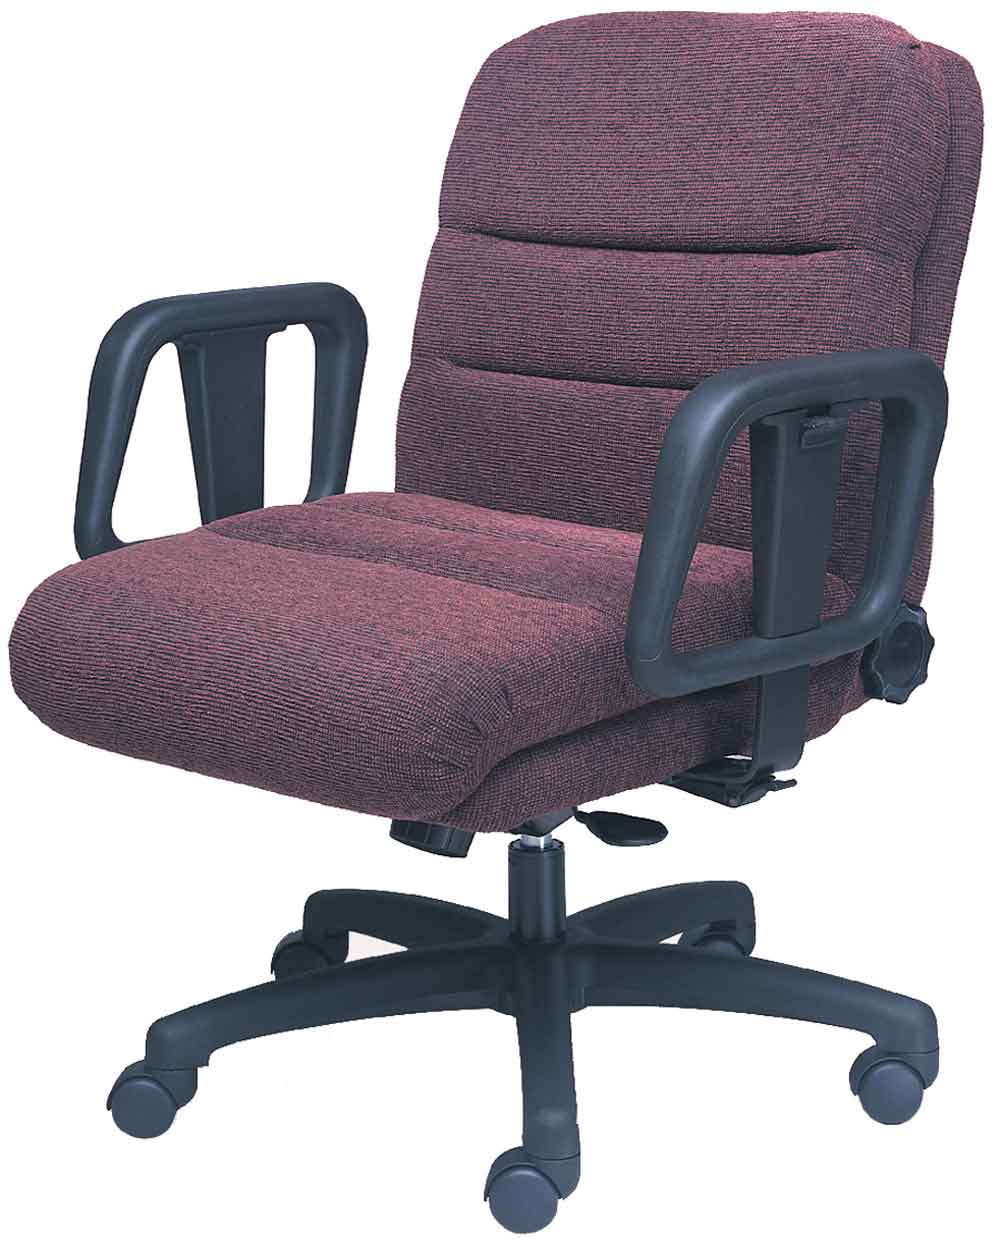 ERA Chairman Big and Tall Chair for Workplace